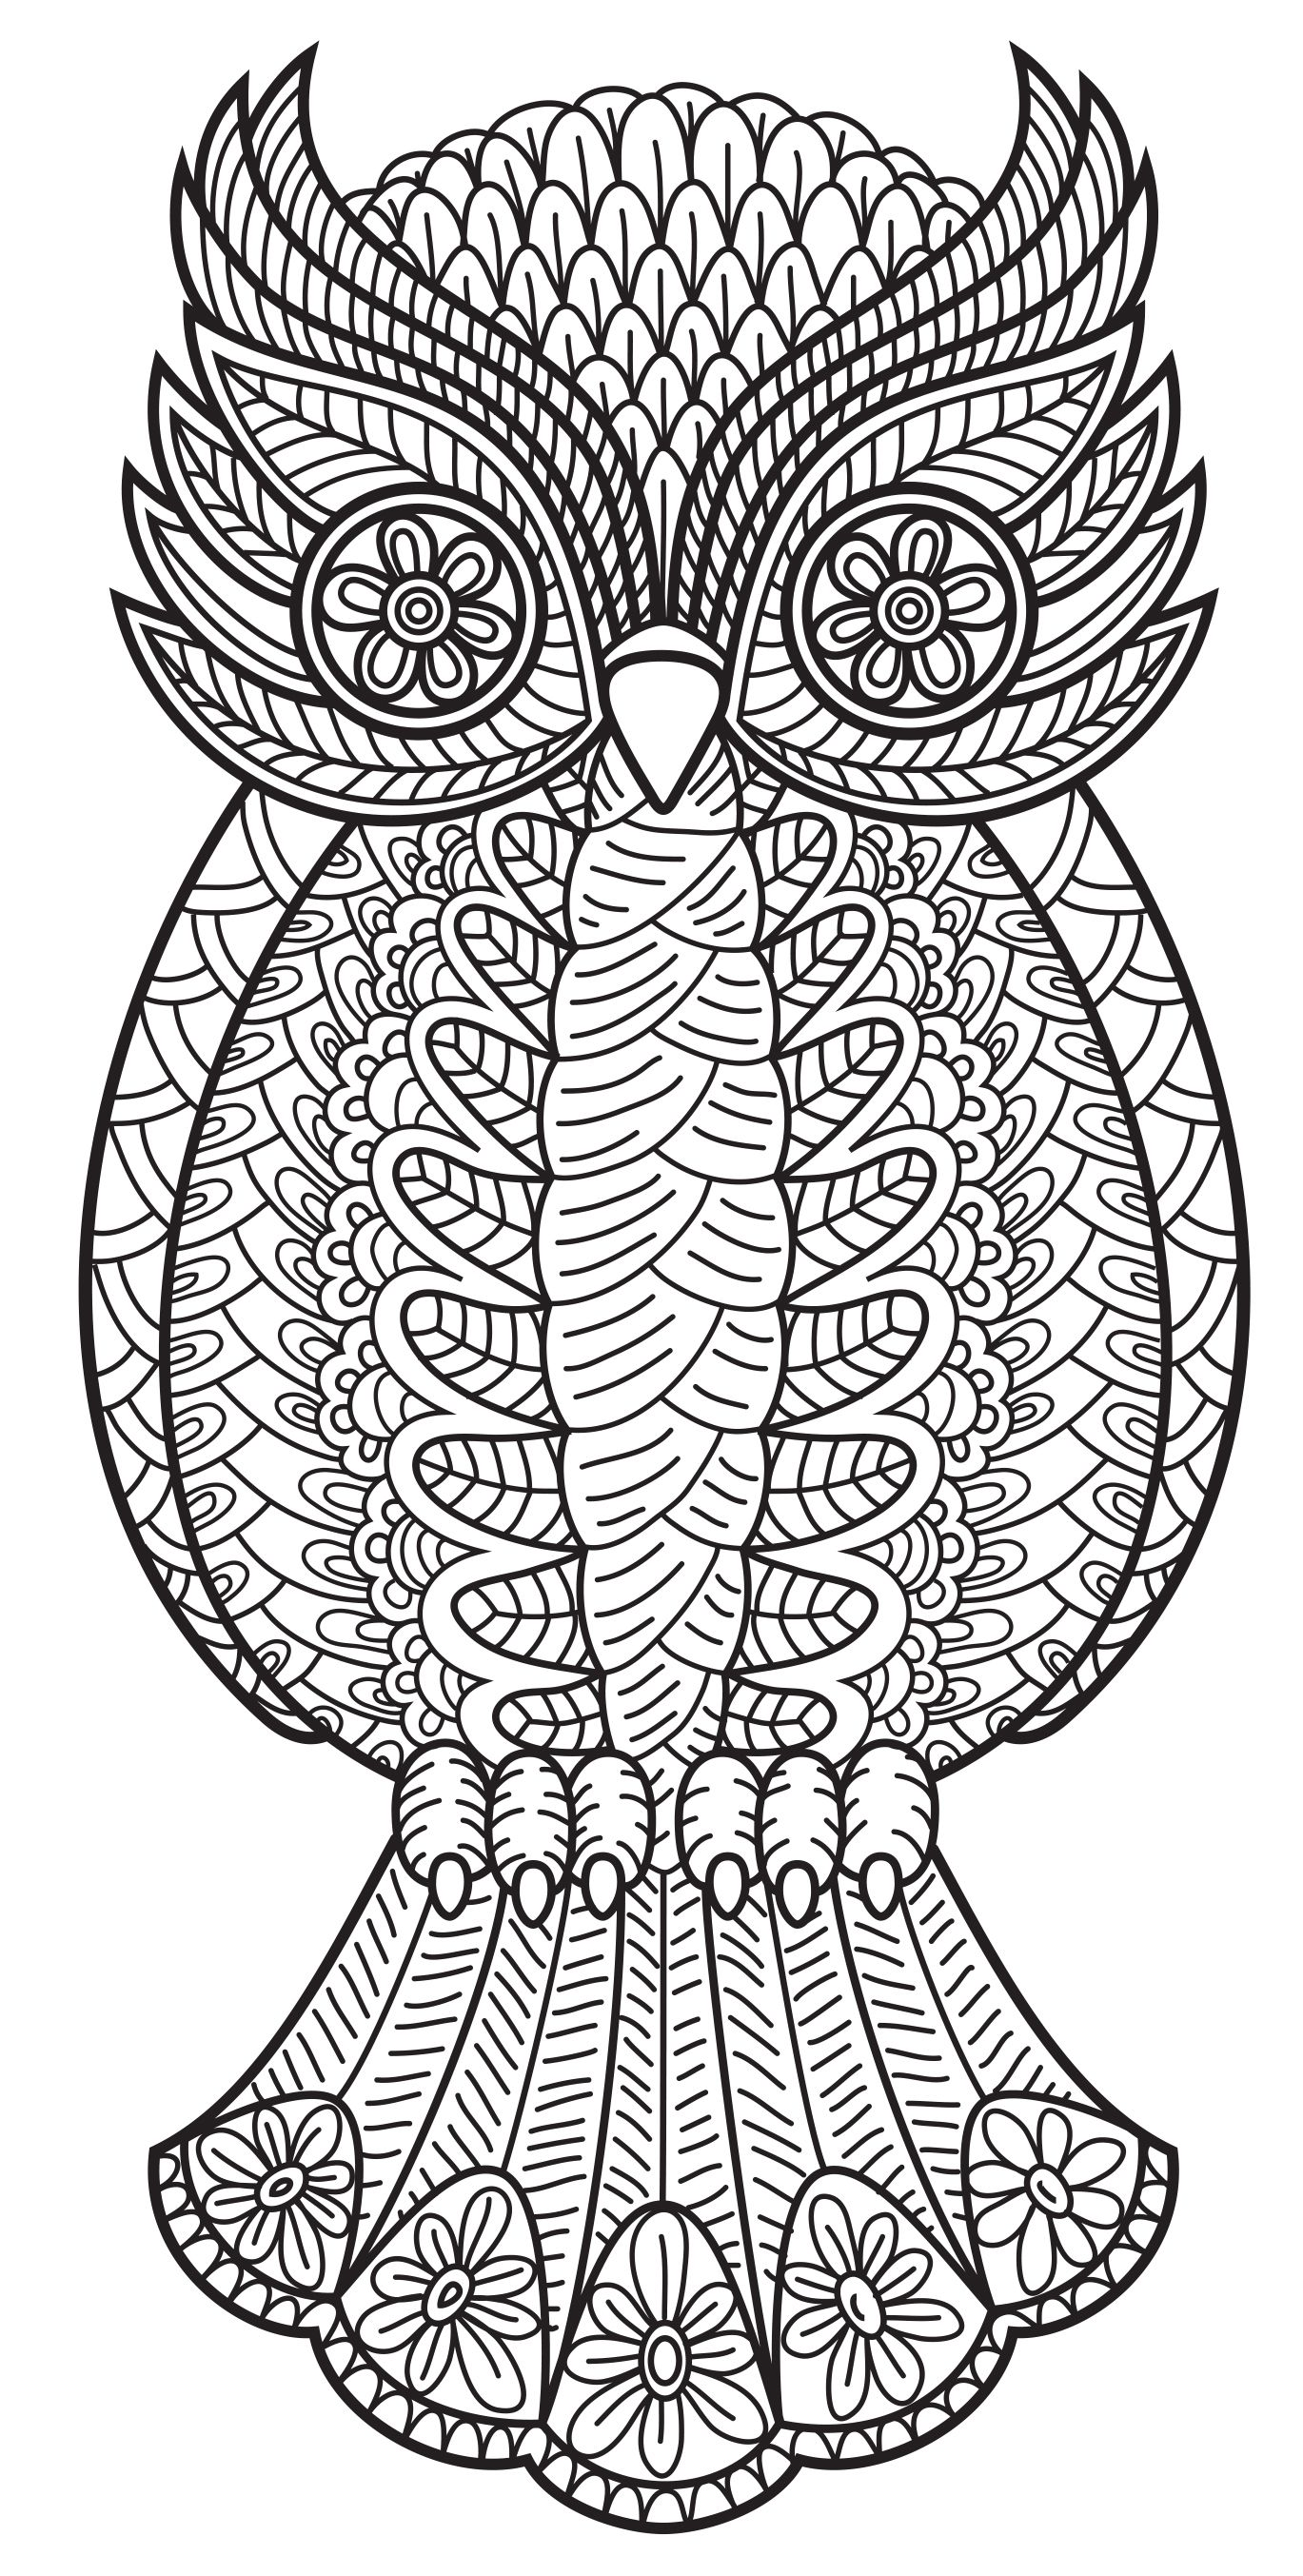 Coloring pages patterns - An Owl From Patterns Coloring Book Vol 3